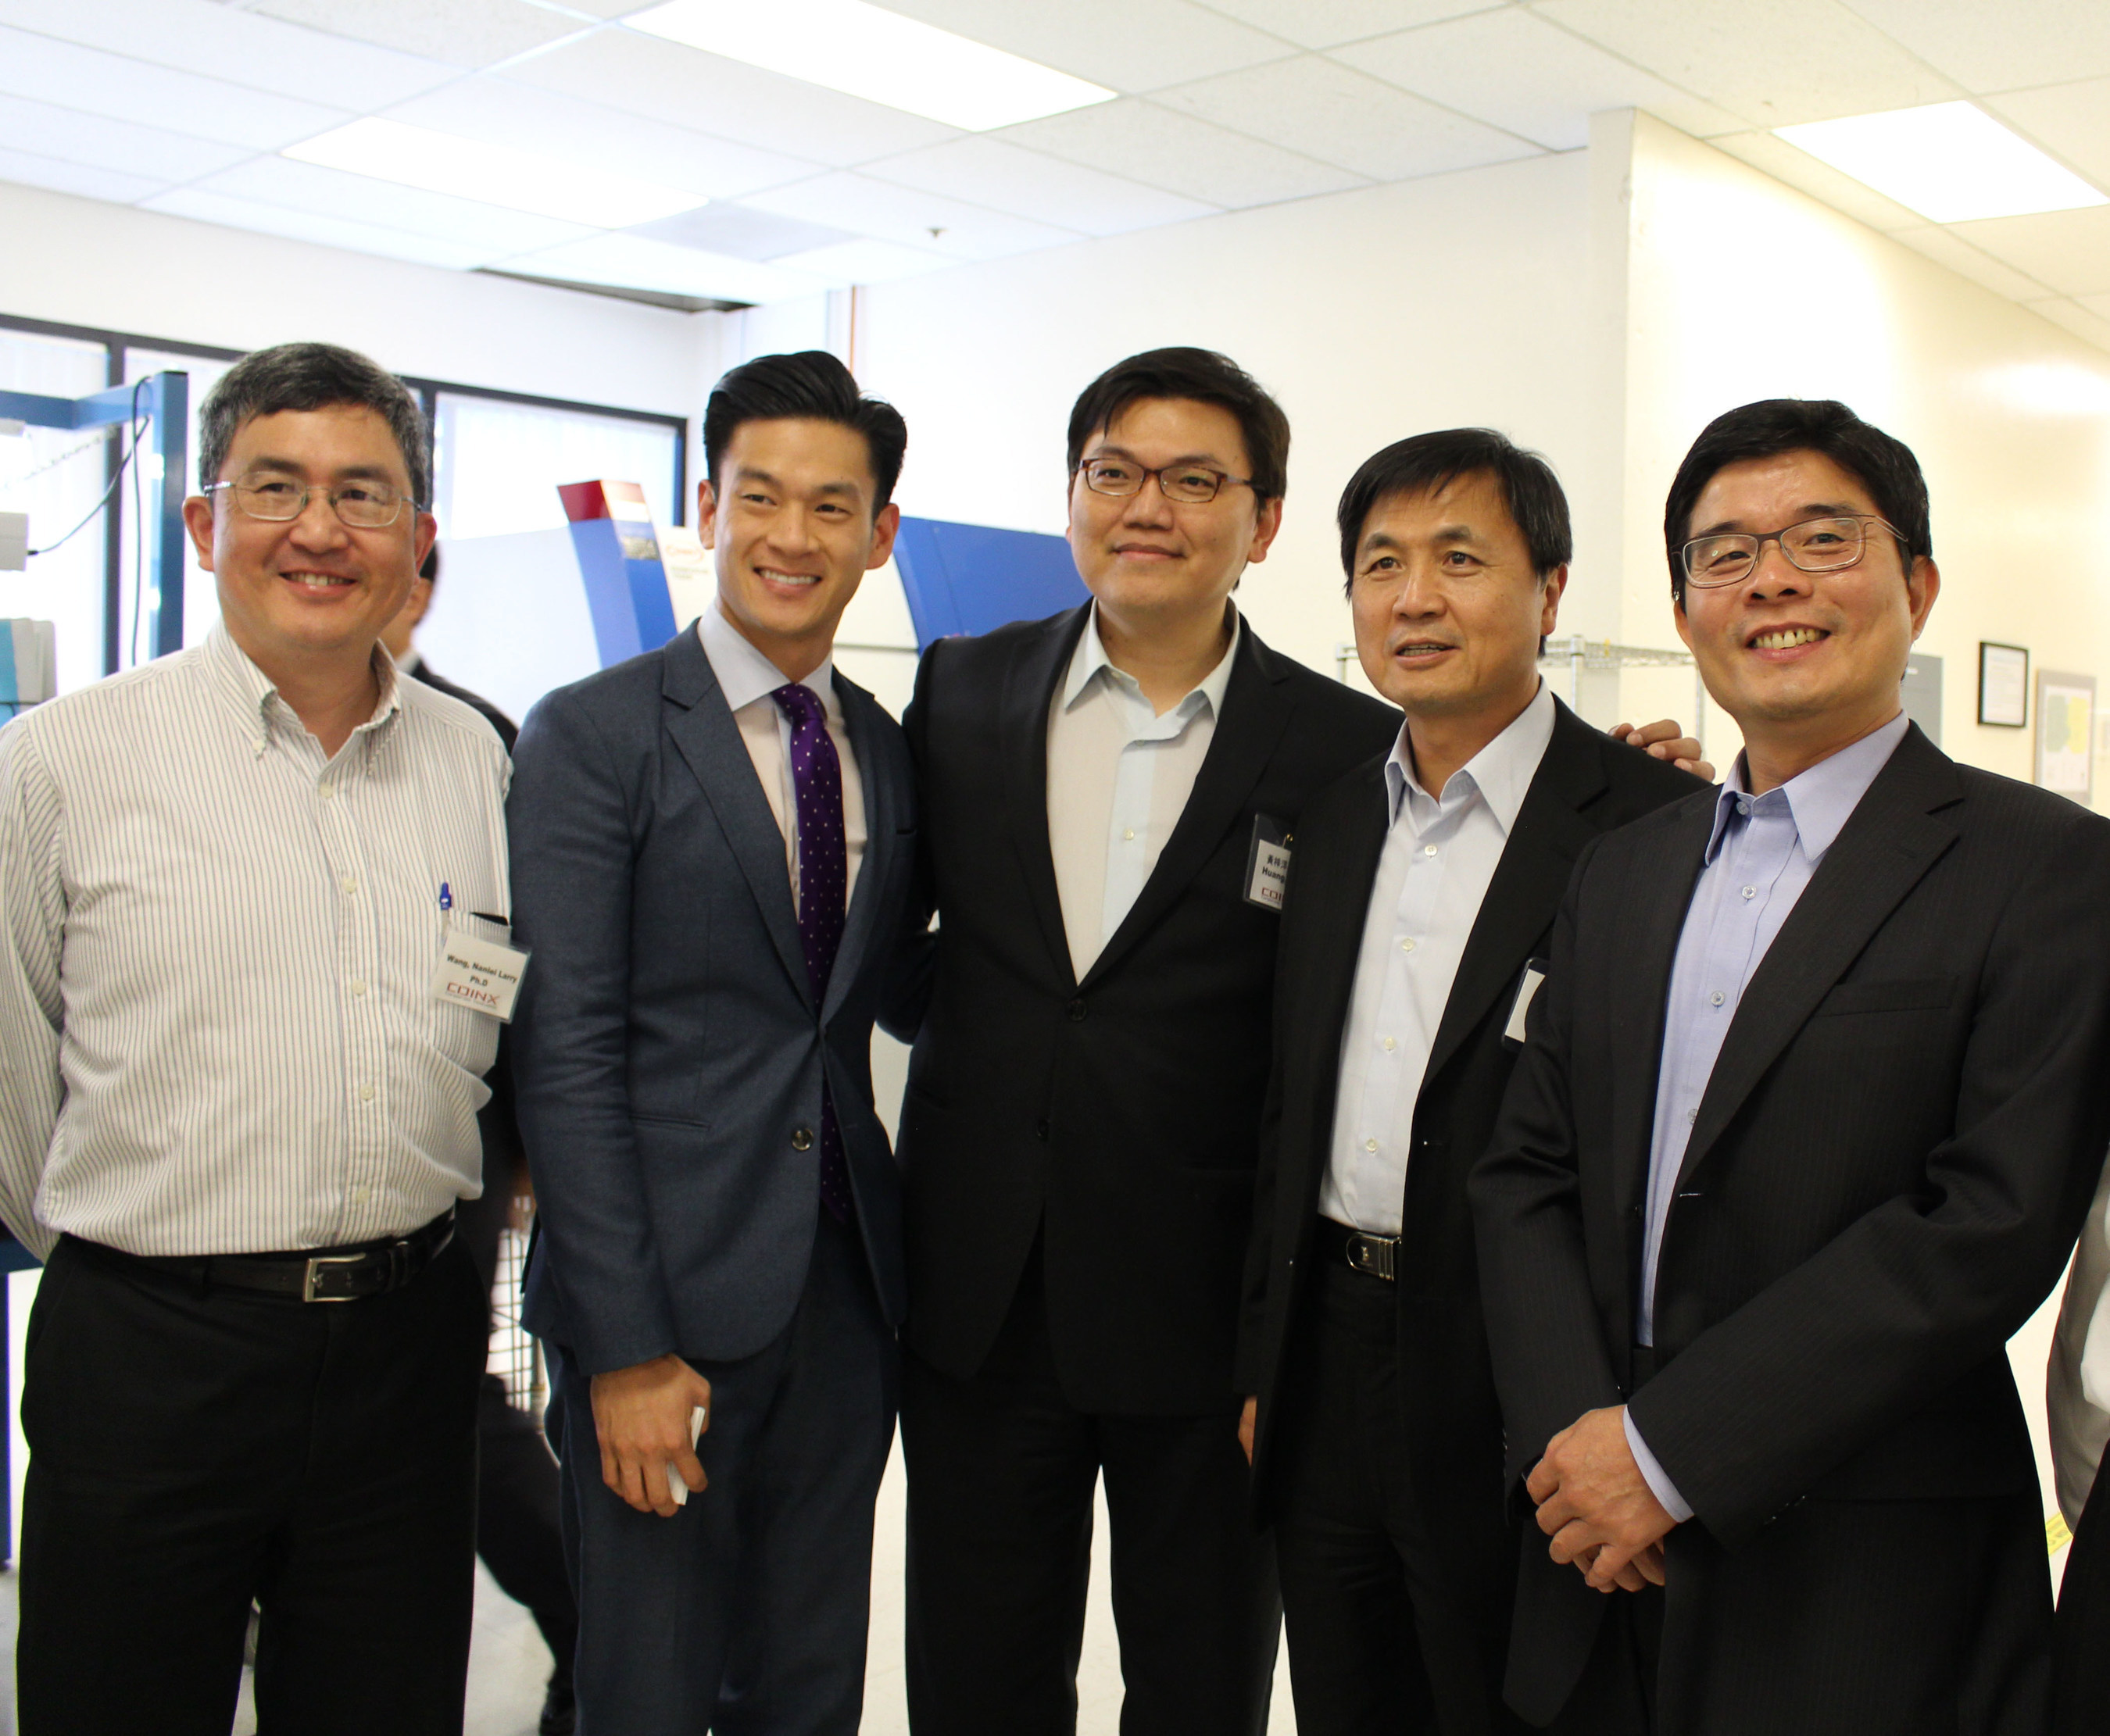 Ministers from Taiwan visit COINX in Silicon Valley